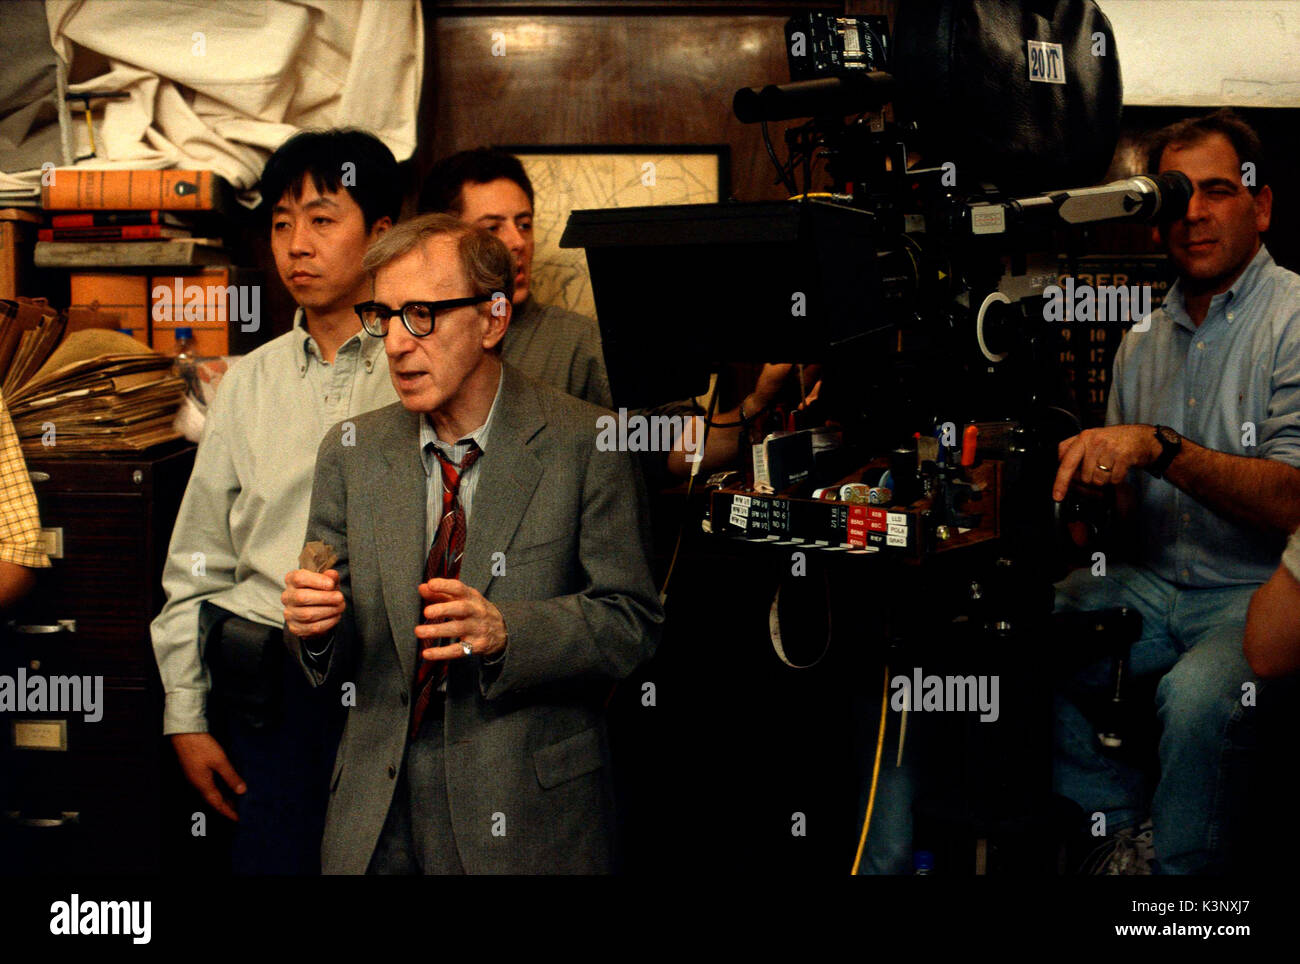 THE CURSE OF THE JADE SCORPION  [US / GER 2001] Cinematographer FEI ZHAO, Director WOODY ALLEN     Date: 2001 Stock Photo